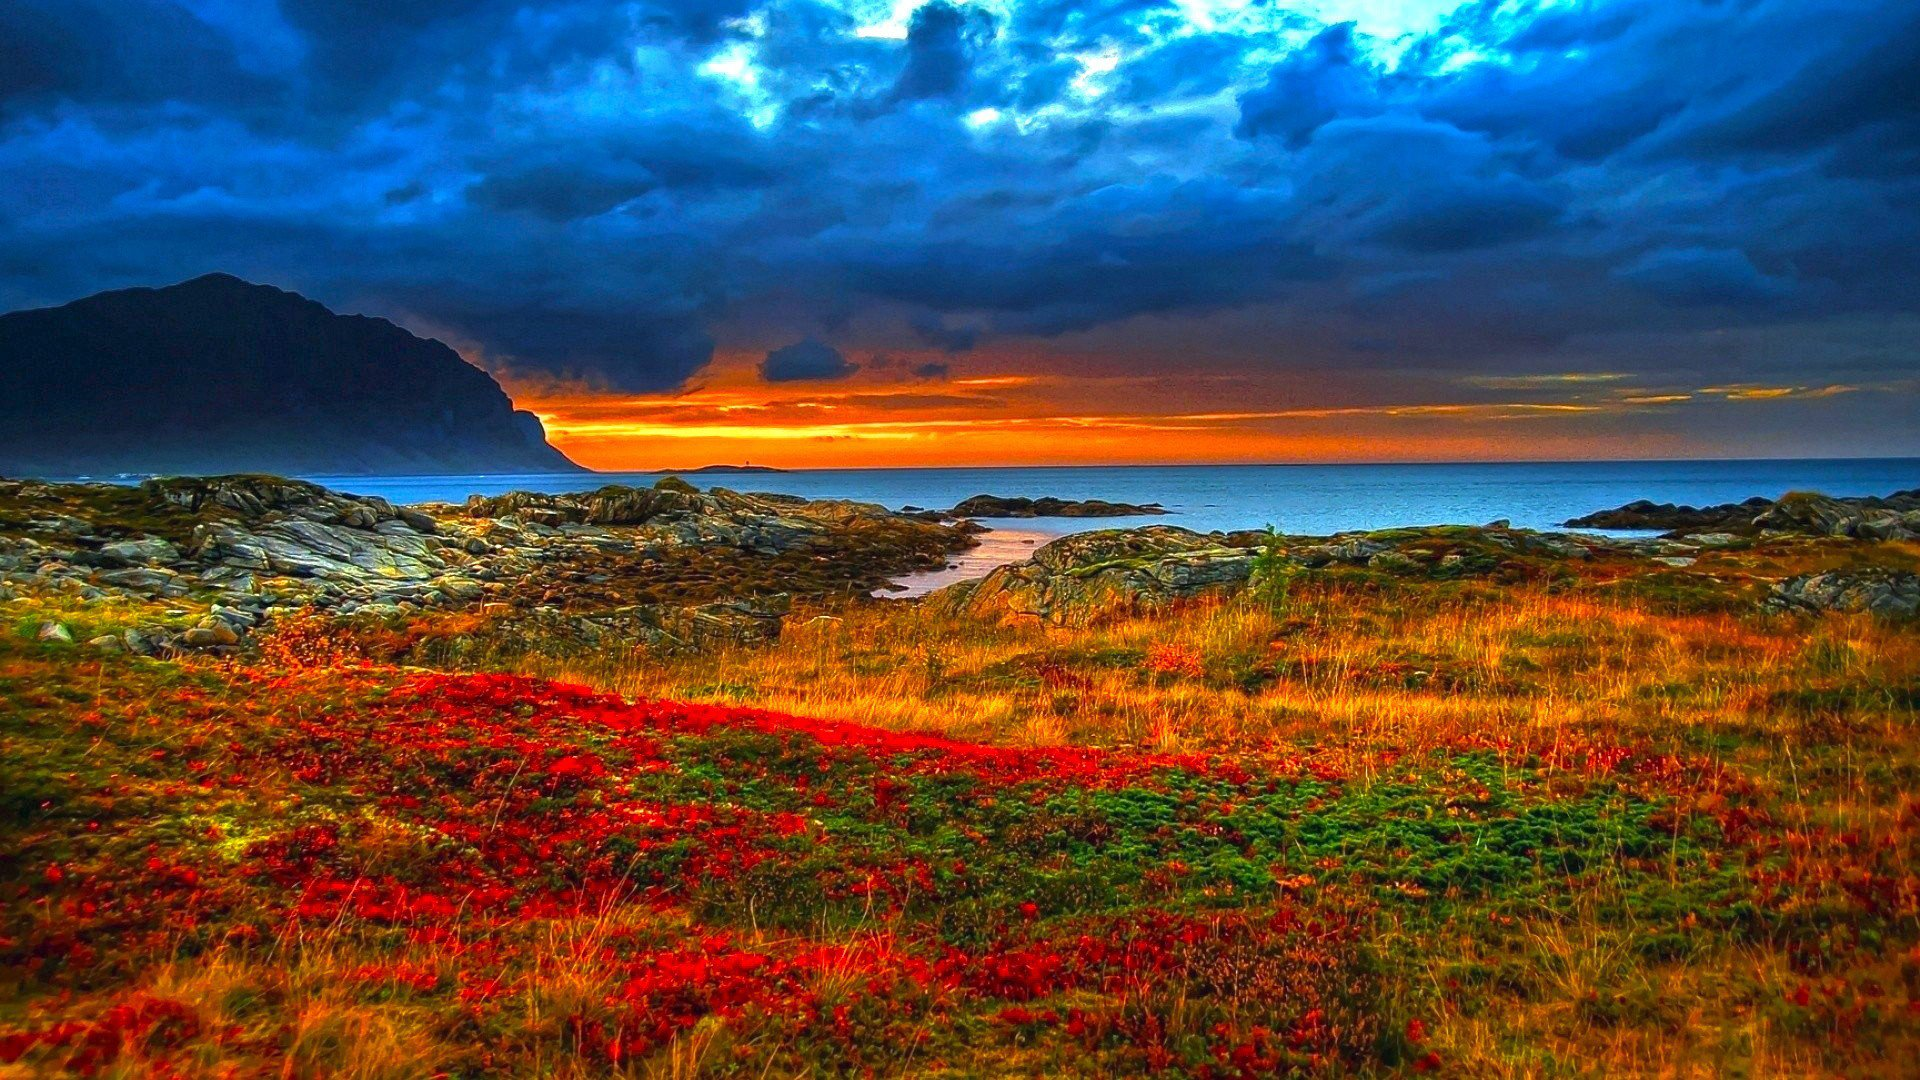 Free Nature Scenic Pictures For Desktop